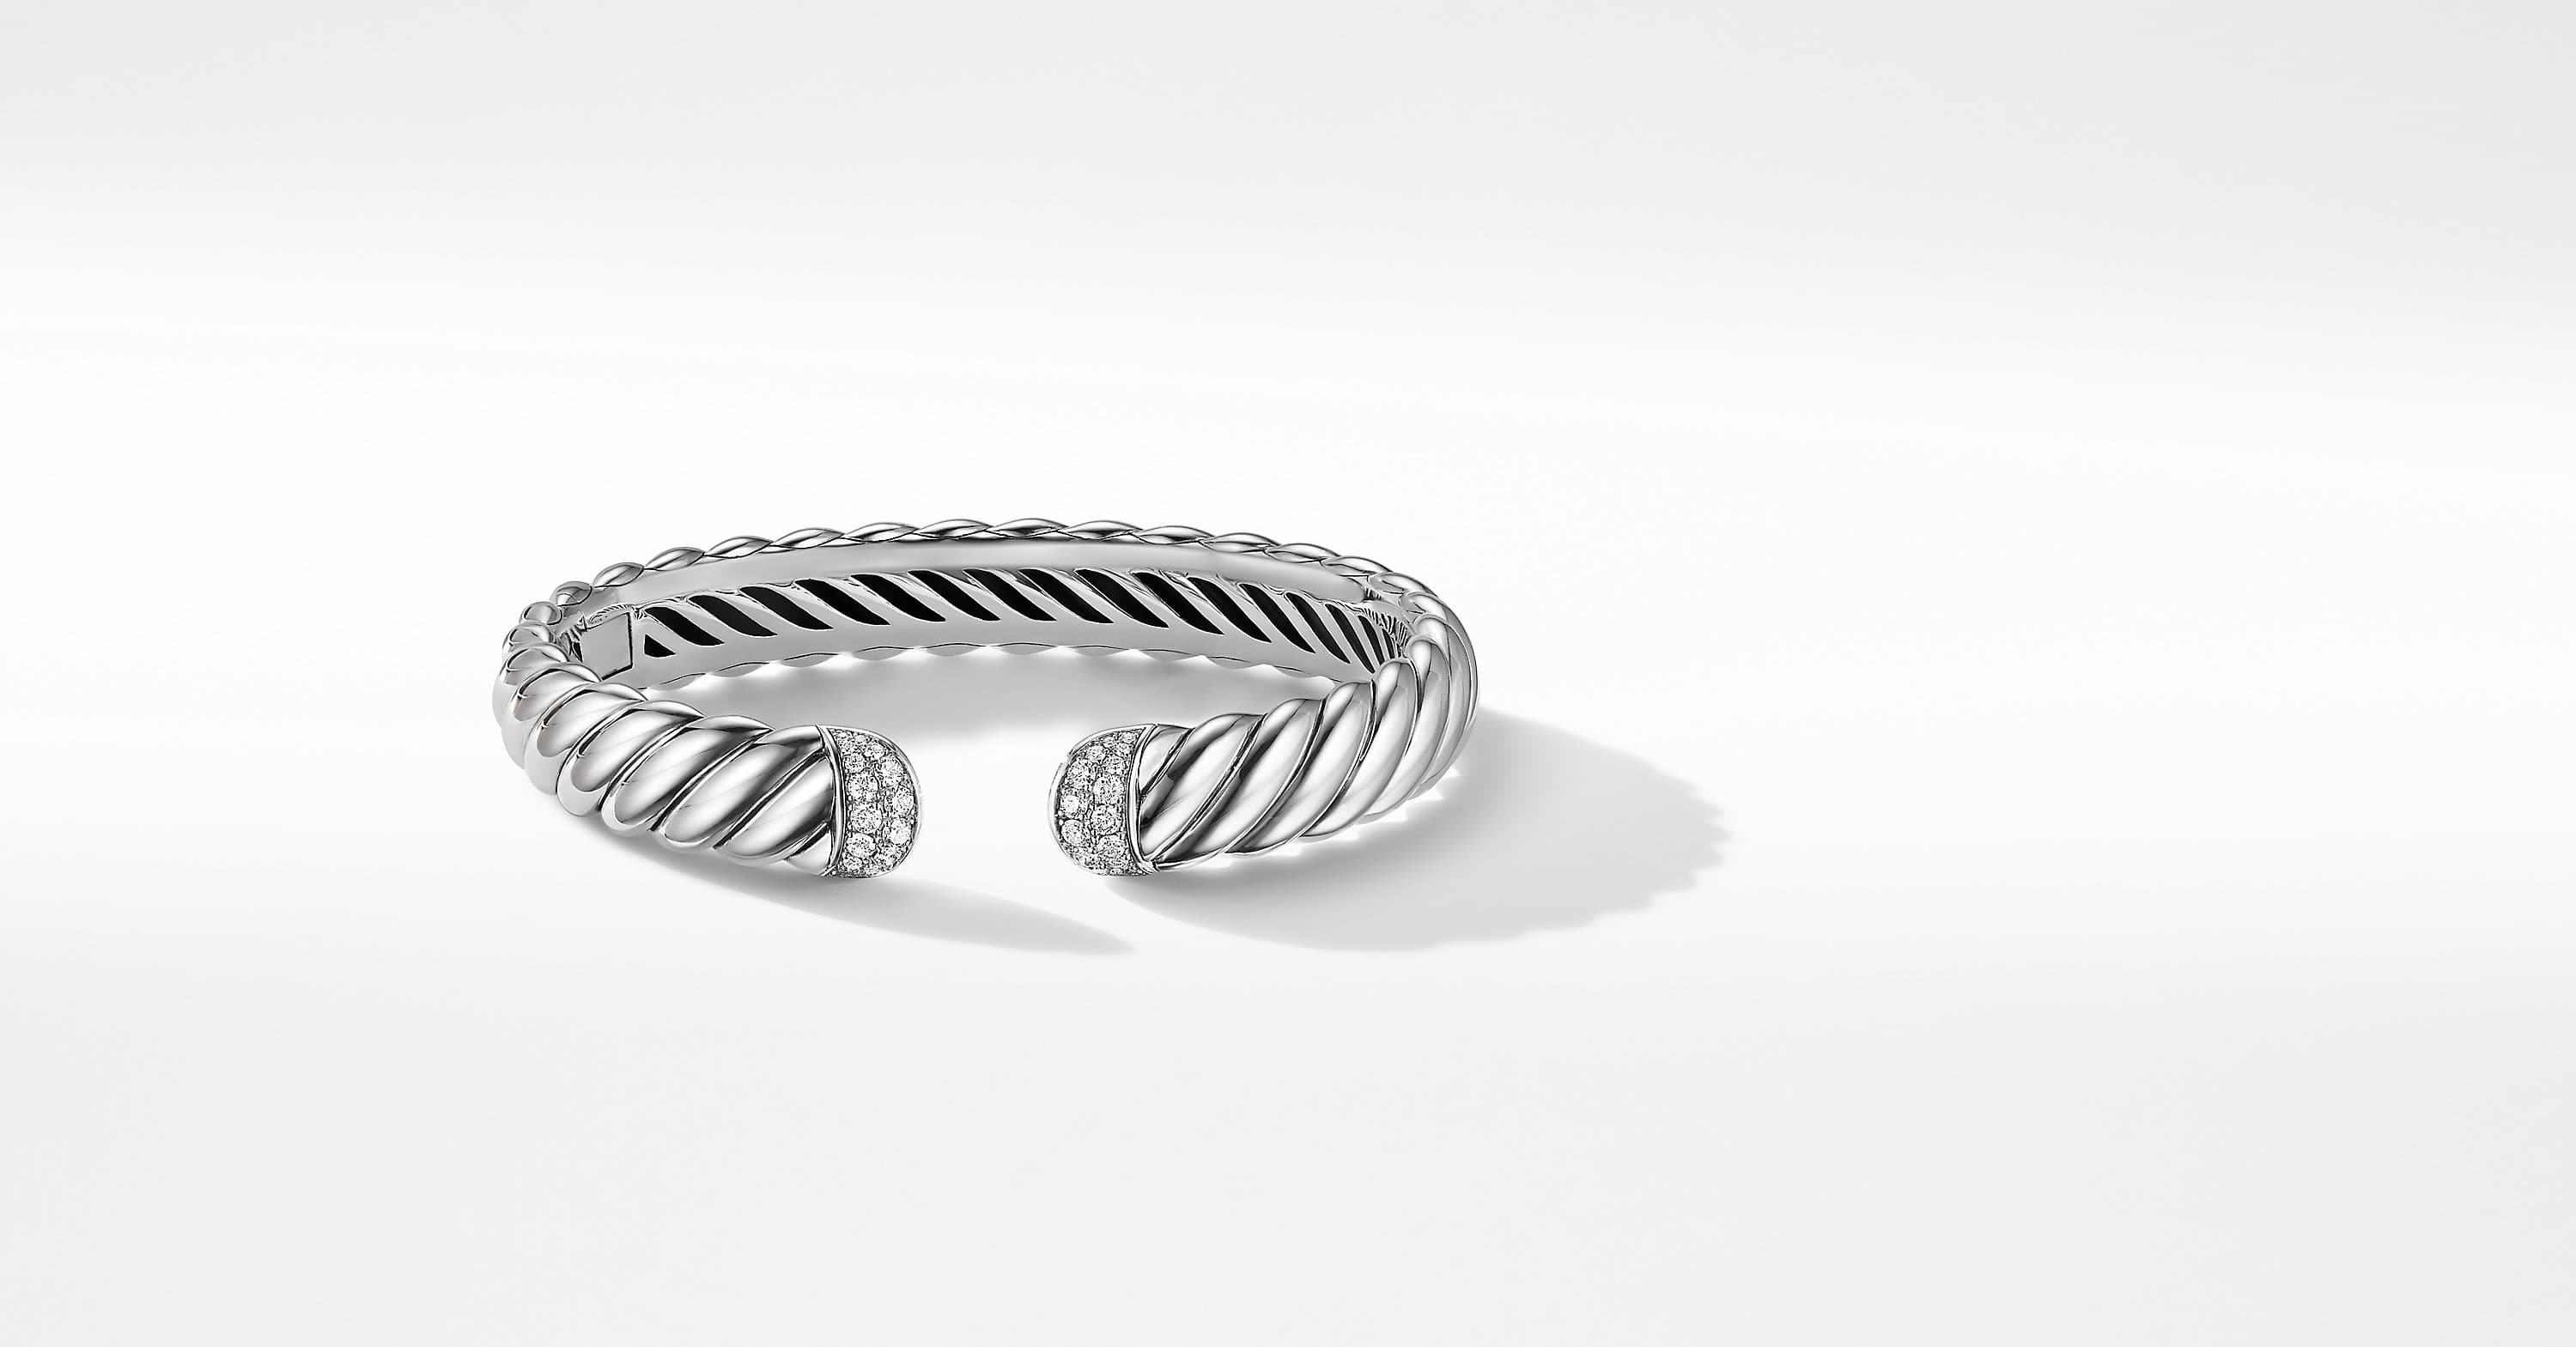 Sculpted Cable Cuff Bracelet with Diamonds, 10mm